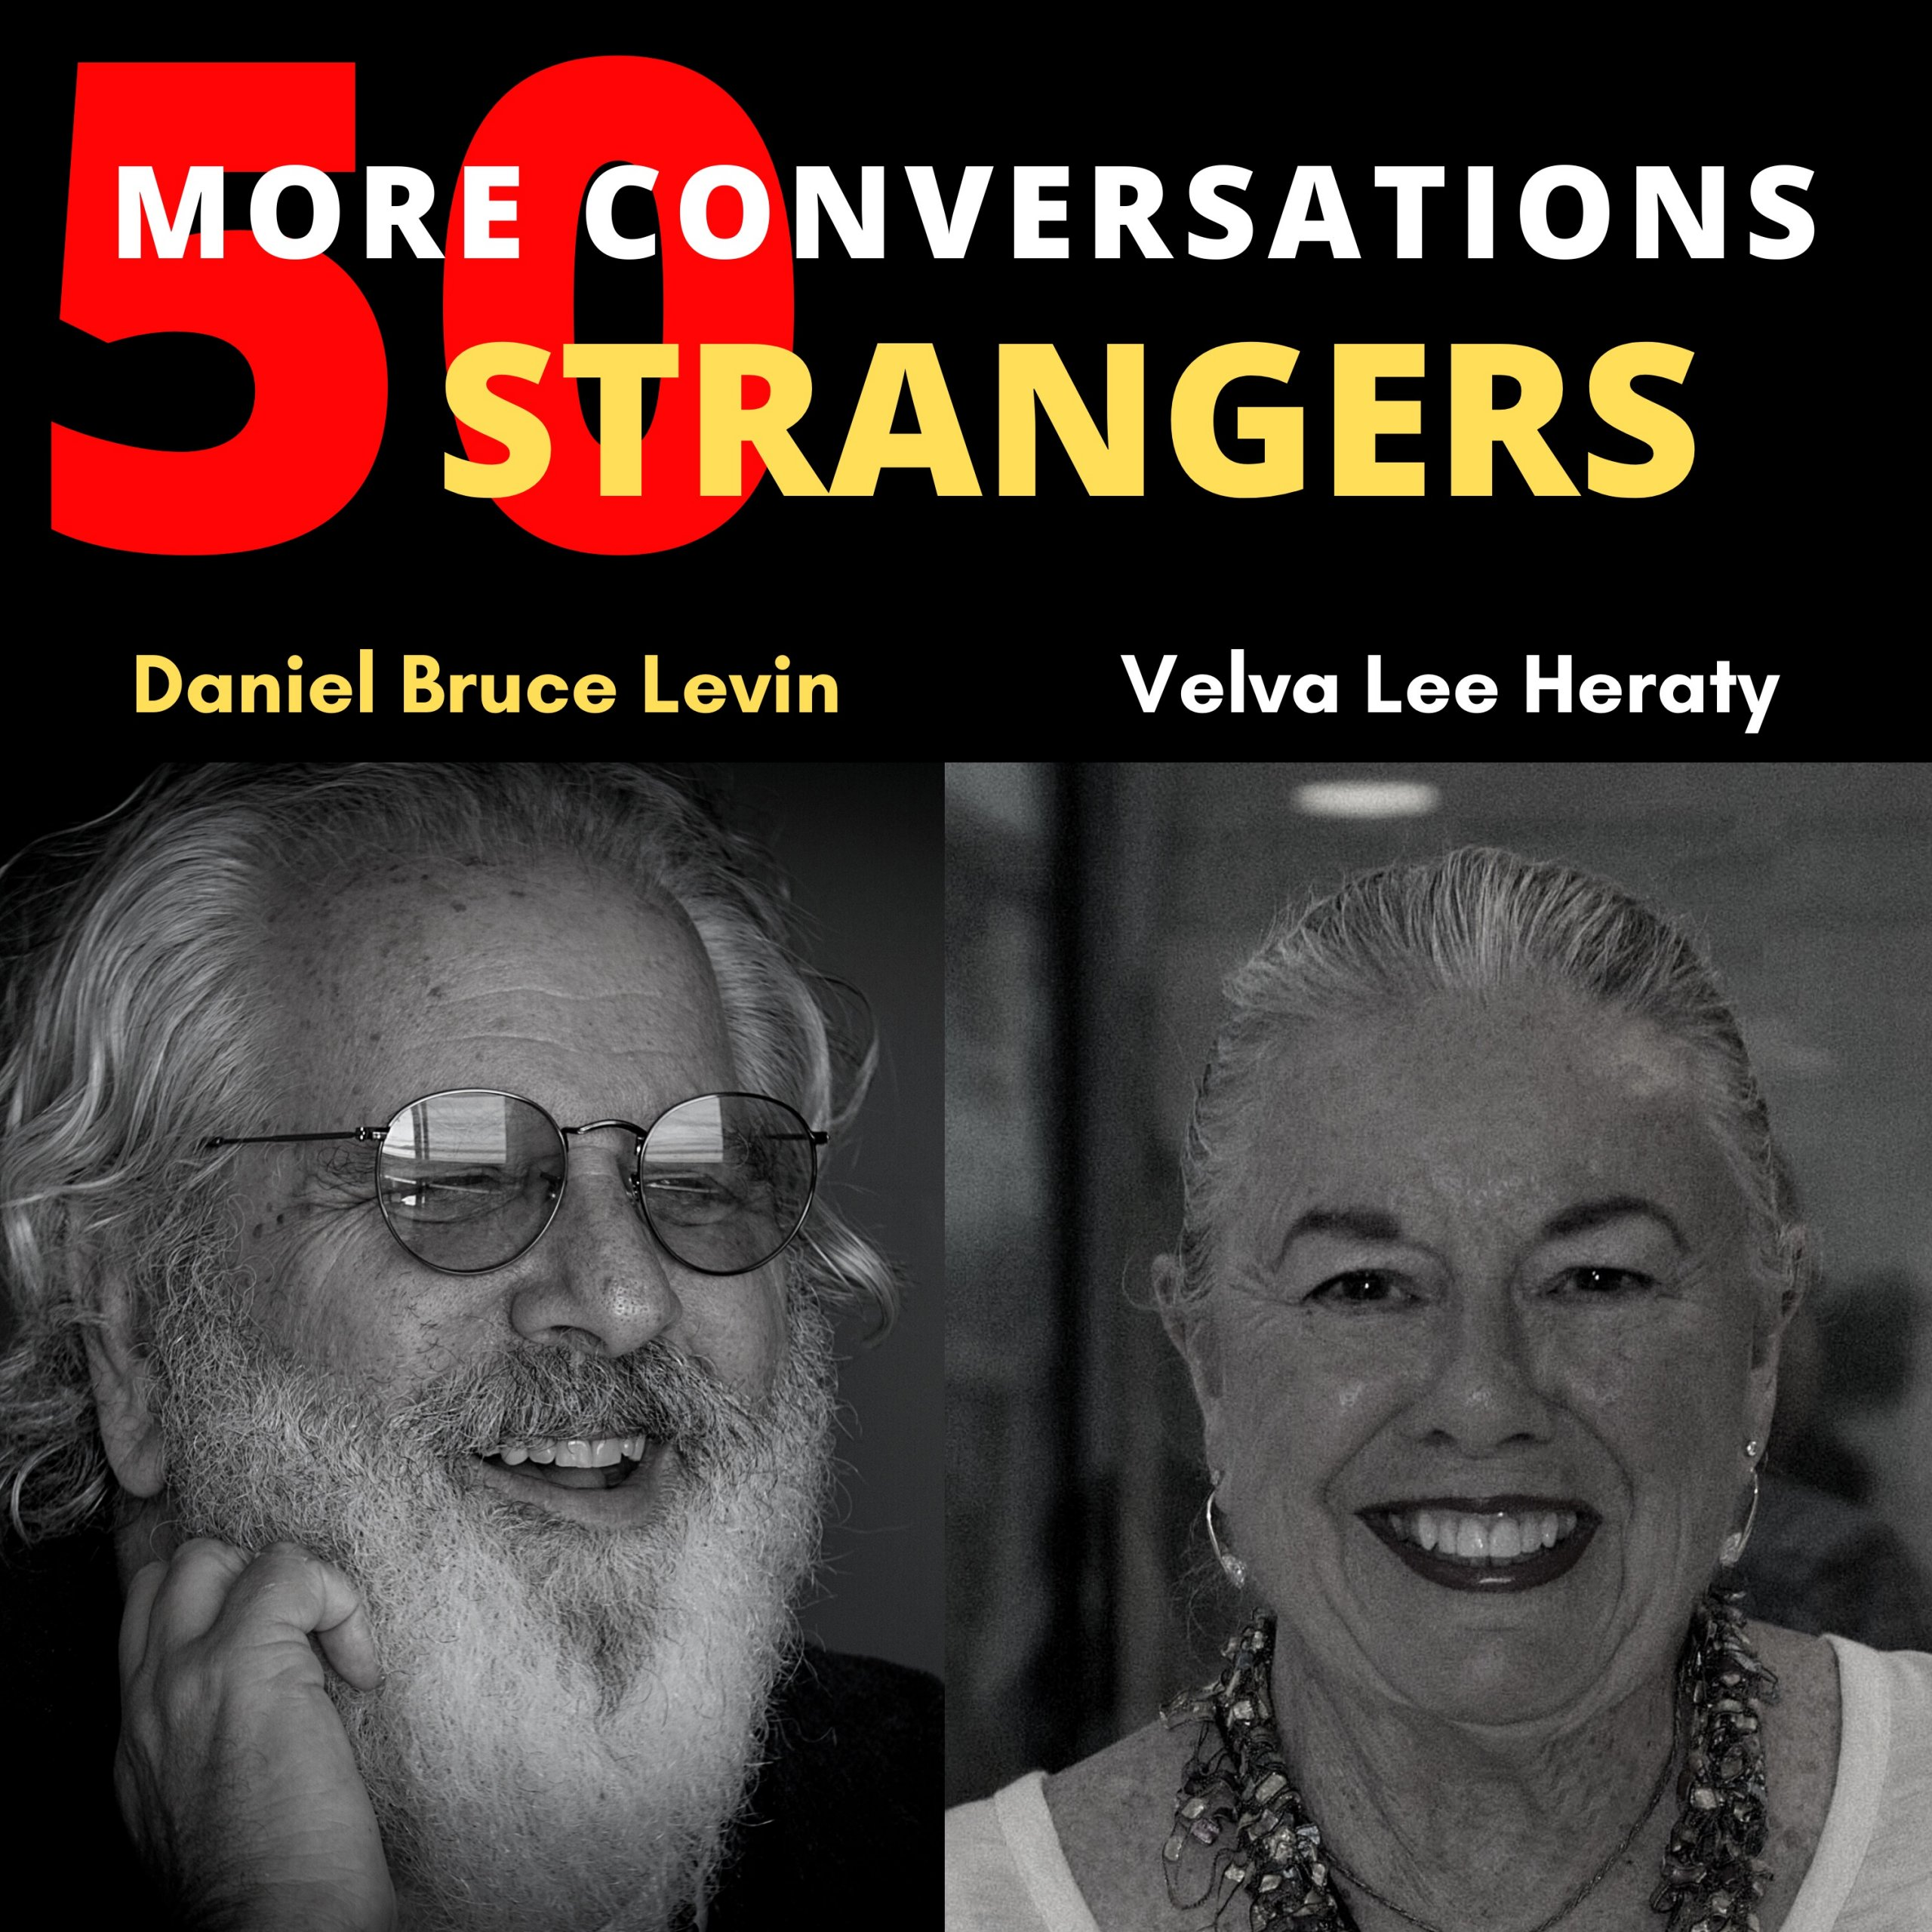 50 More Conversations with 50 More Stranger with Velva Lee Heraty